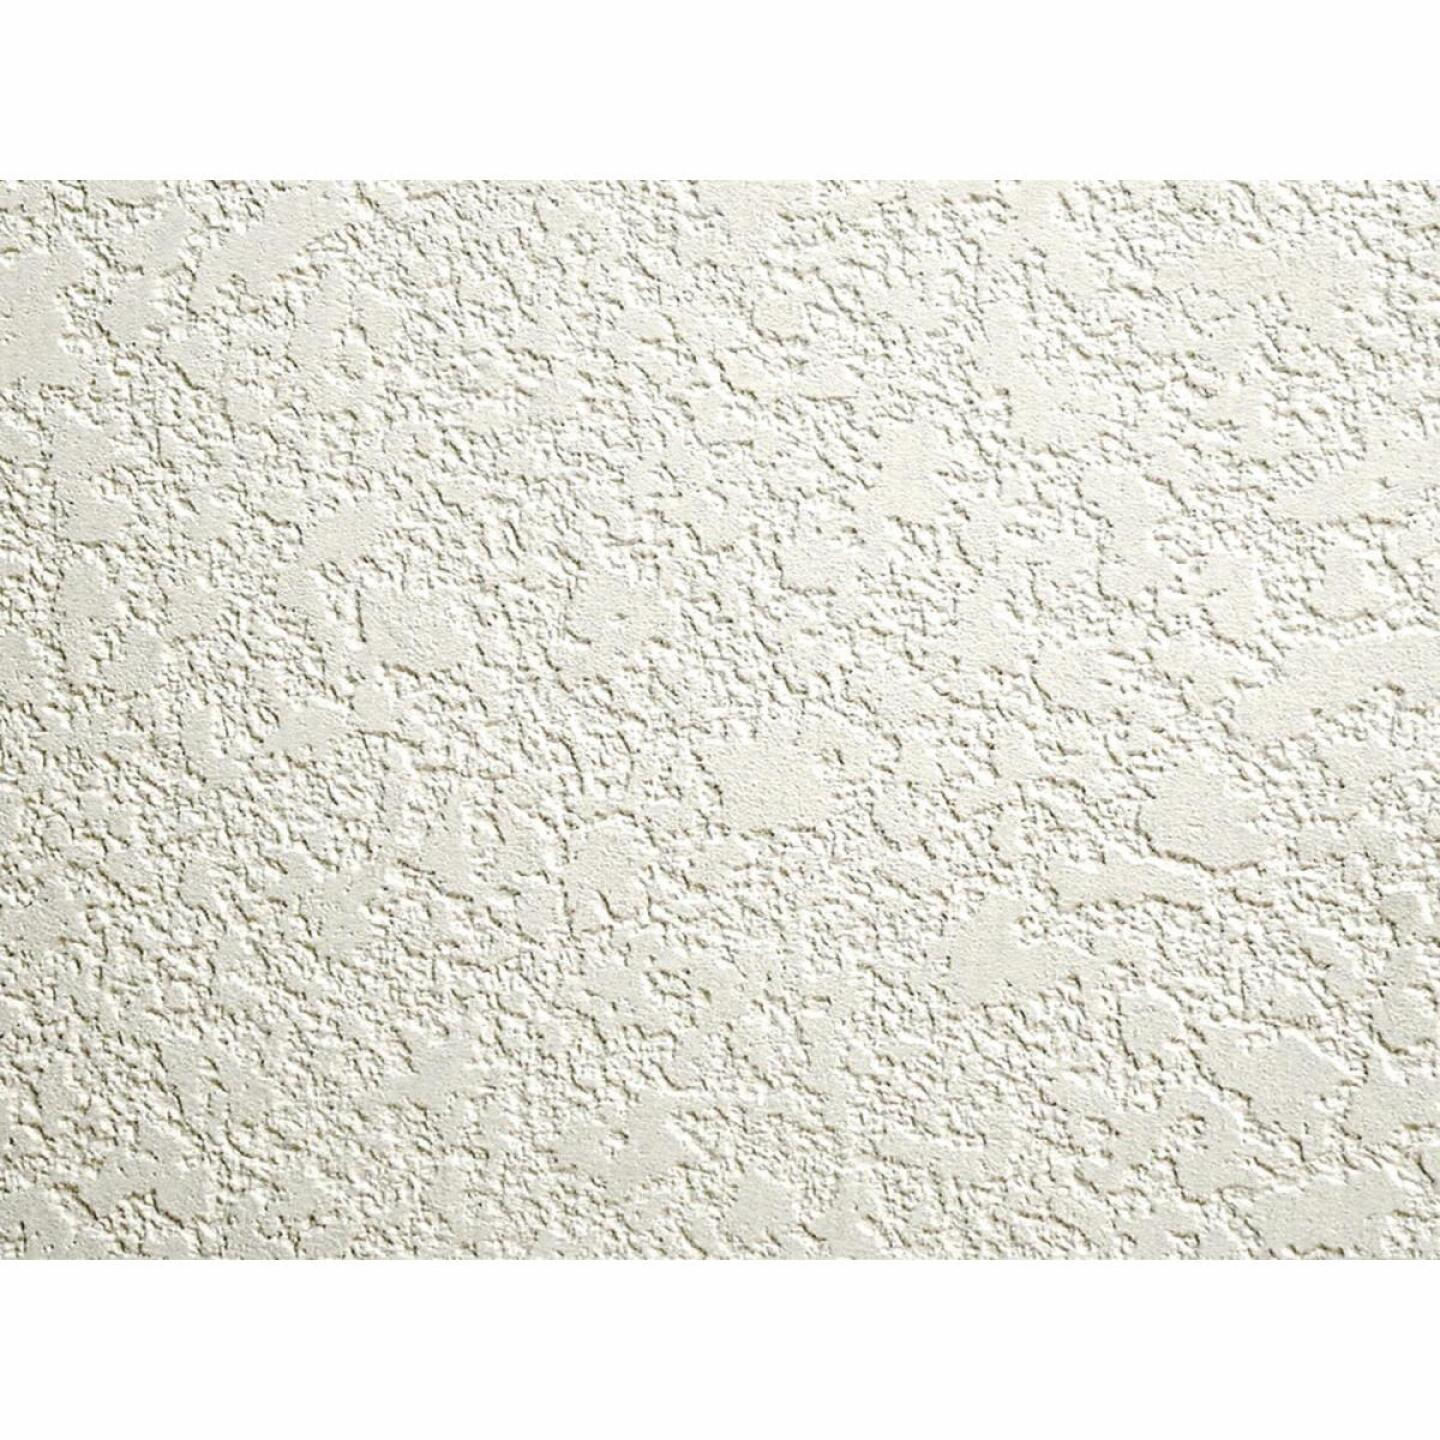 DPI 4 Ft. x 8 Ft. x 3/16 In. White Stucco Hacienda Wall Paneling Image 1